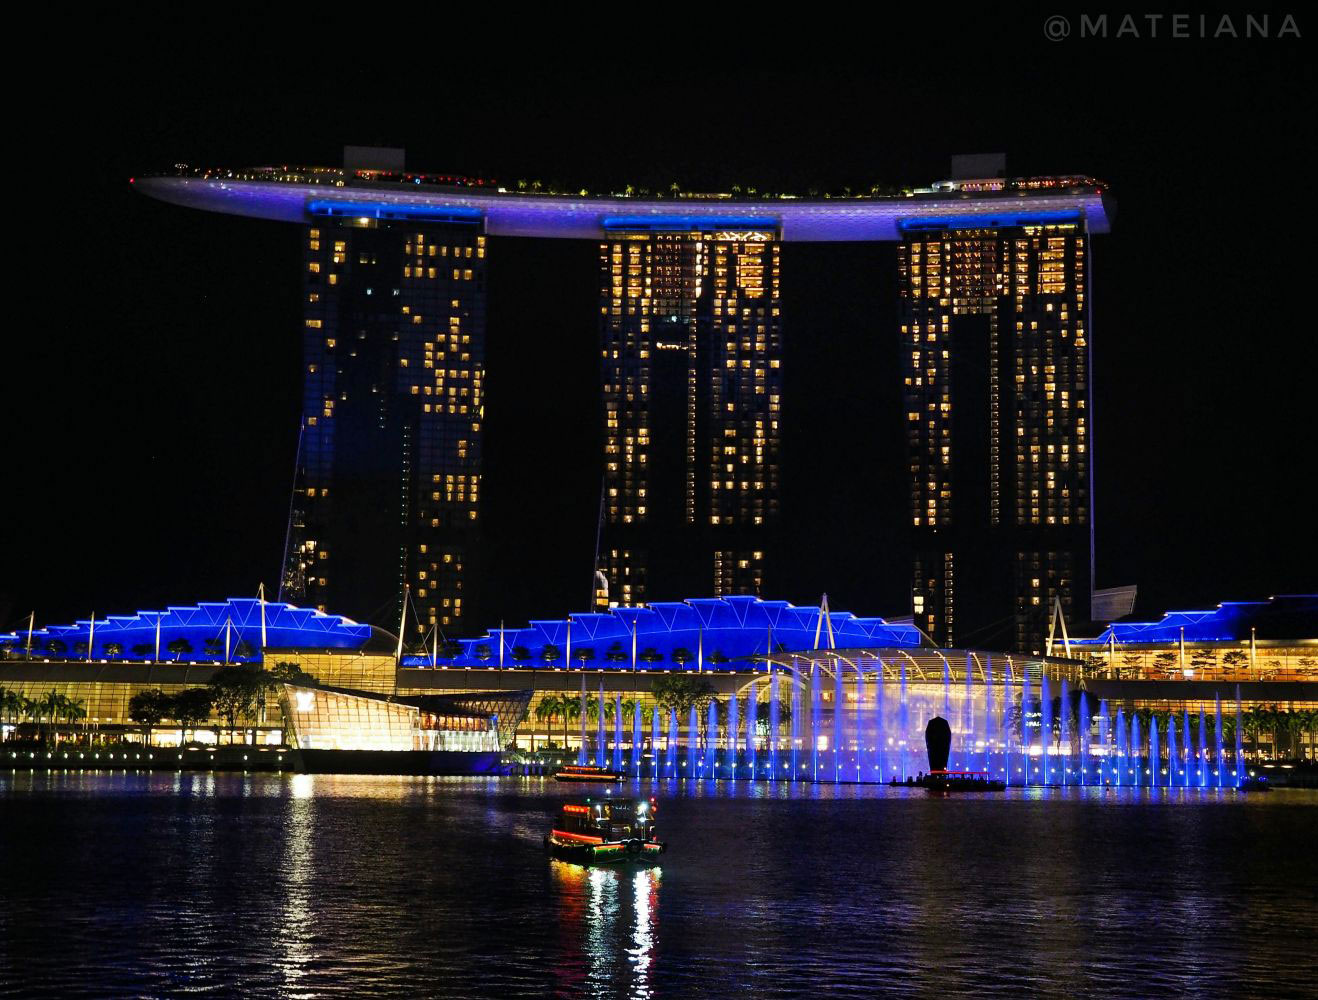 Spectra---A-Light-and-Water-Show-at-Marina-Bay-Sands-in-Singapore